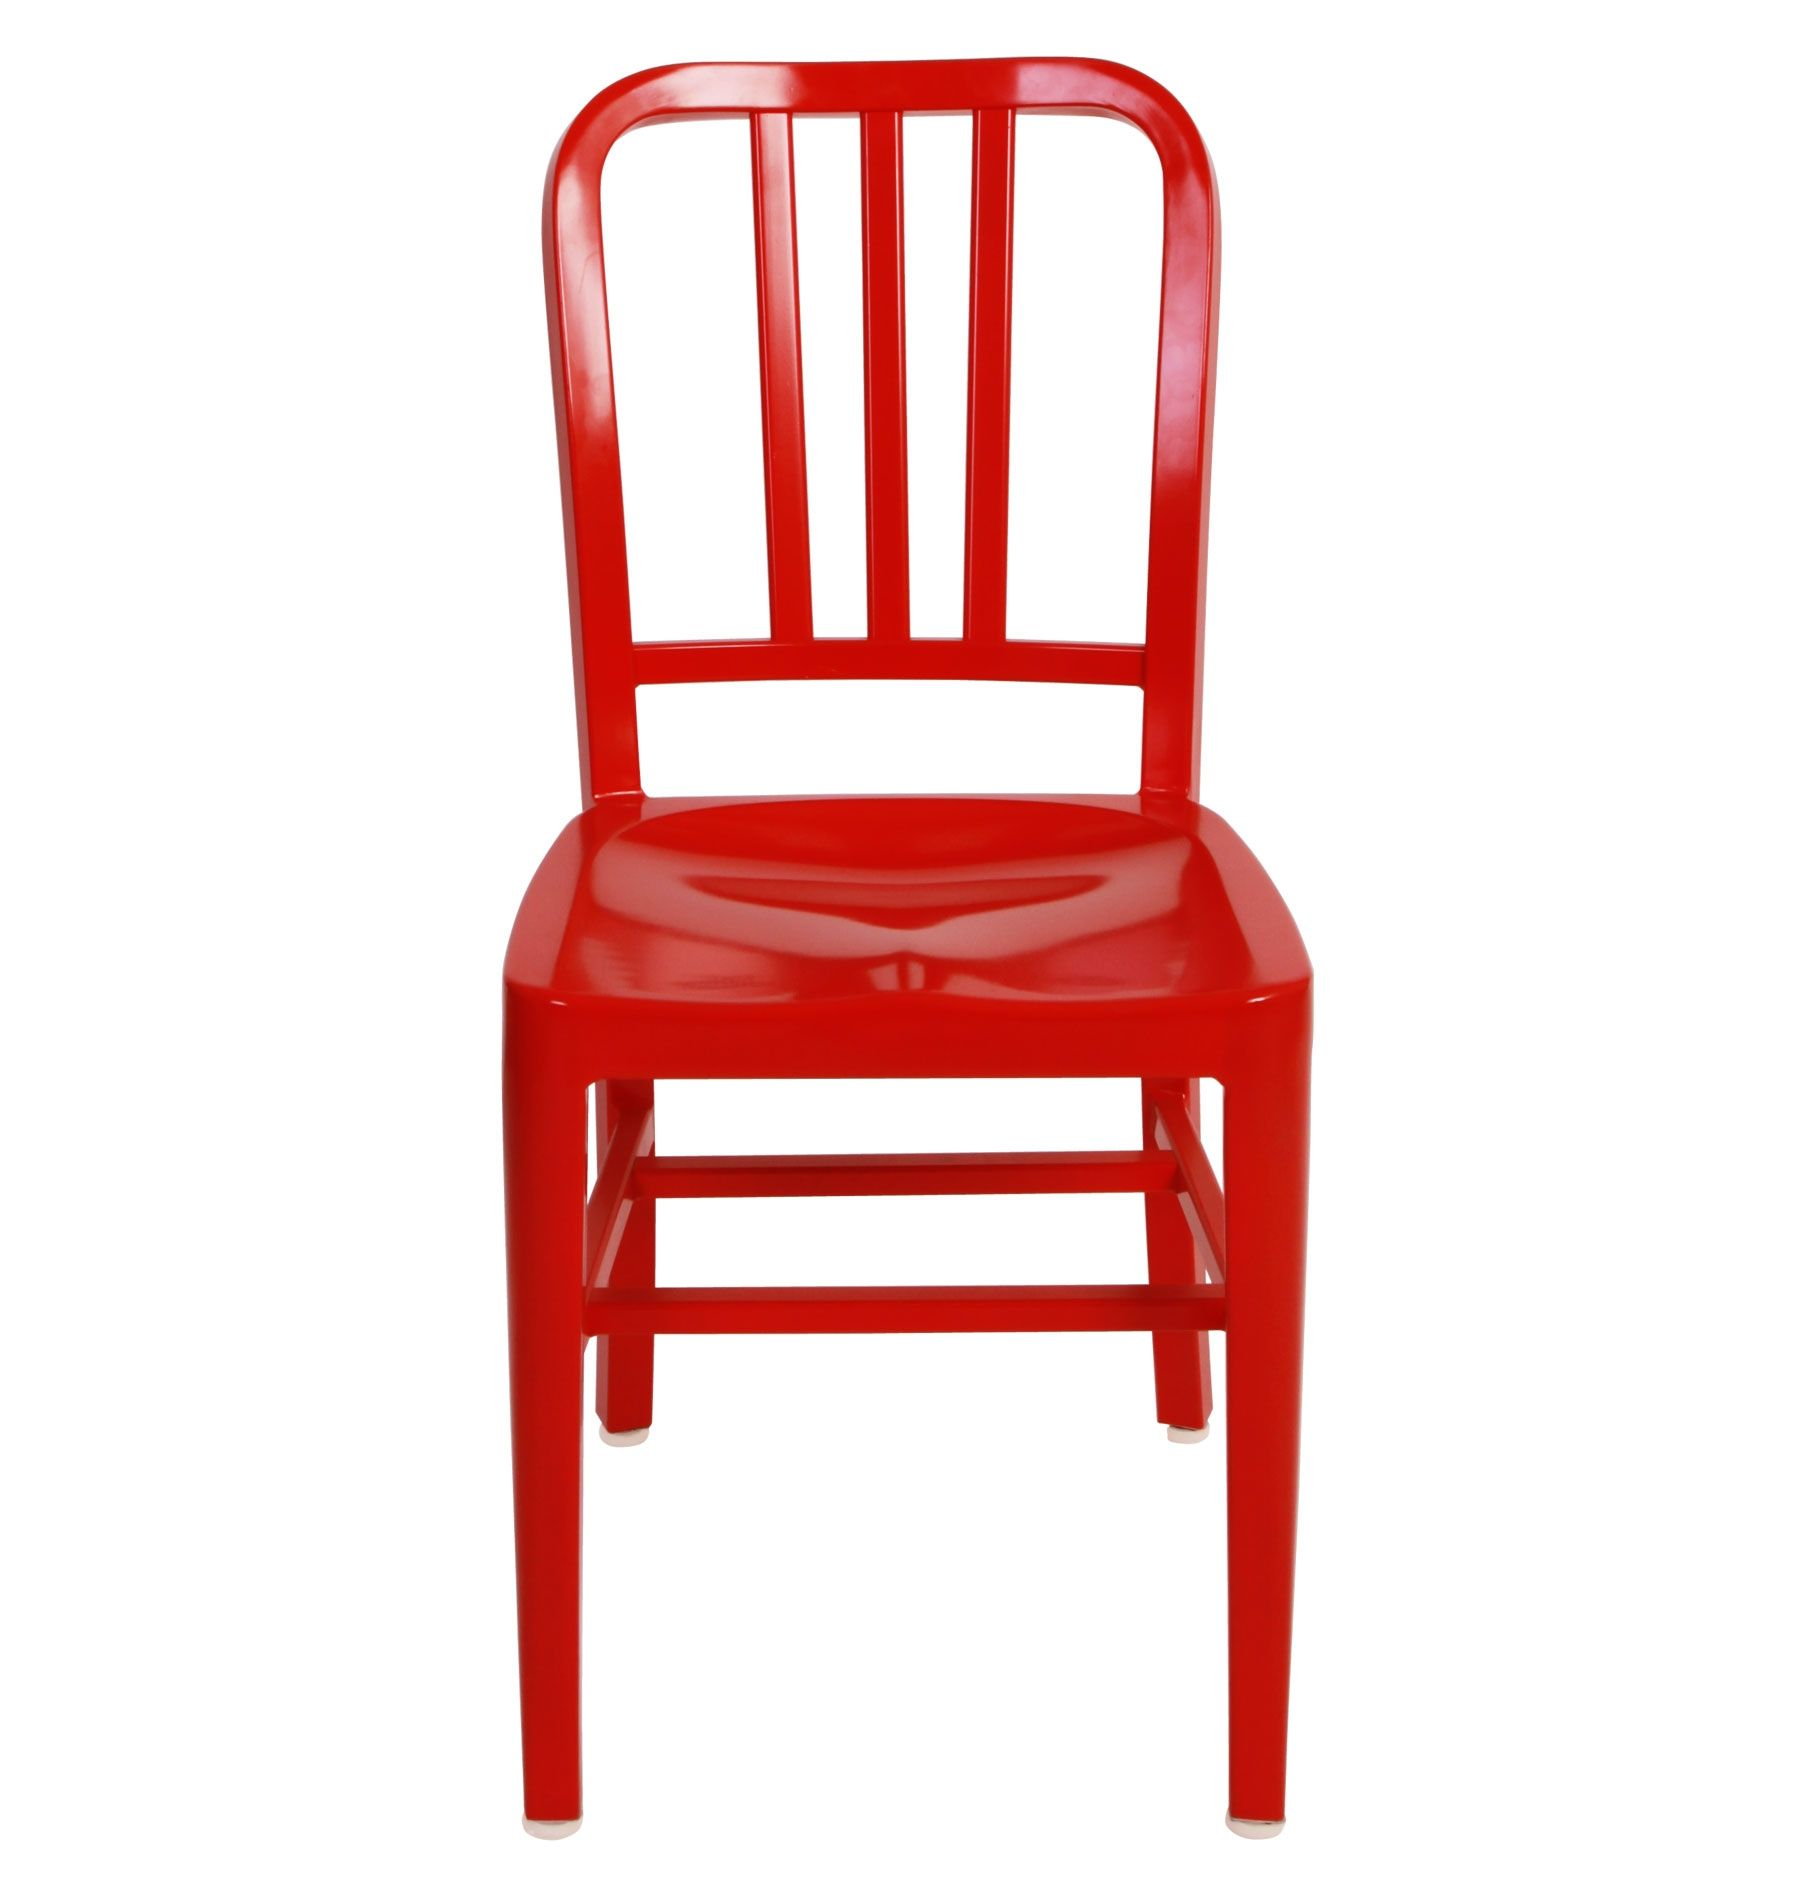 The Matt Blatt Replica Emeco US Navy Chair   Aluminium   Matt Blatt